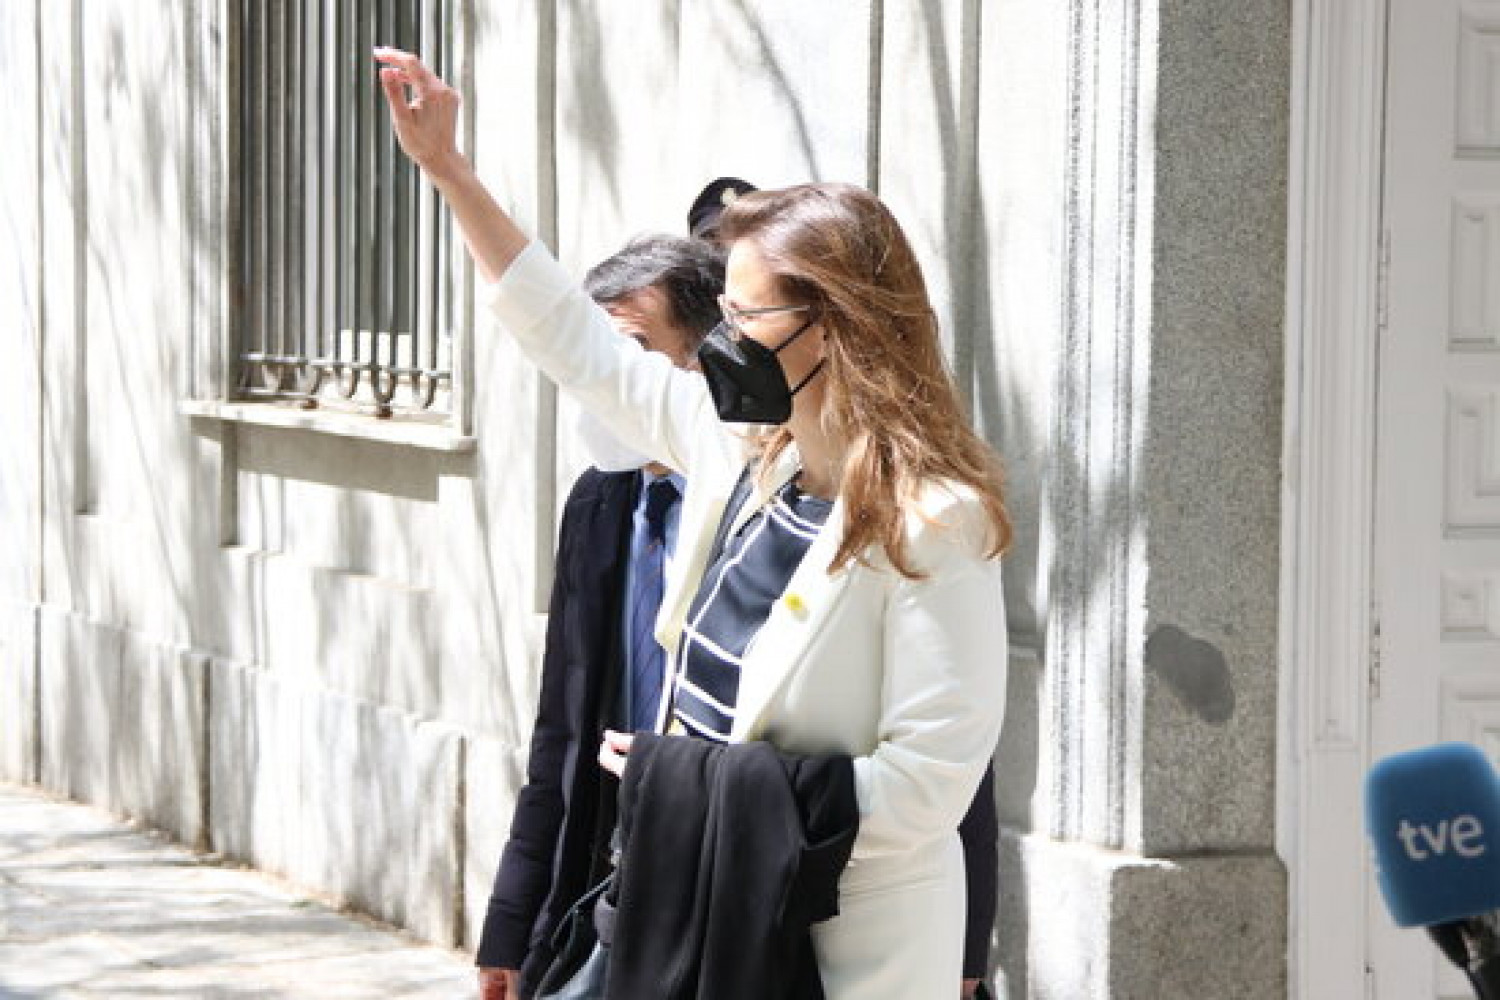 Former minister Meritxell Serret raising a fist as she leaves the Supreme Court in late March 2021 (by Andrea Zamorano)